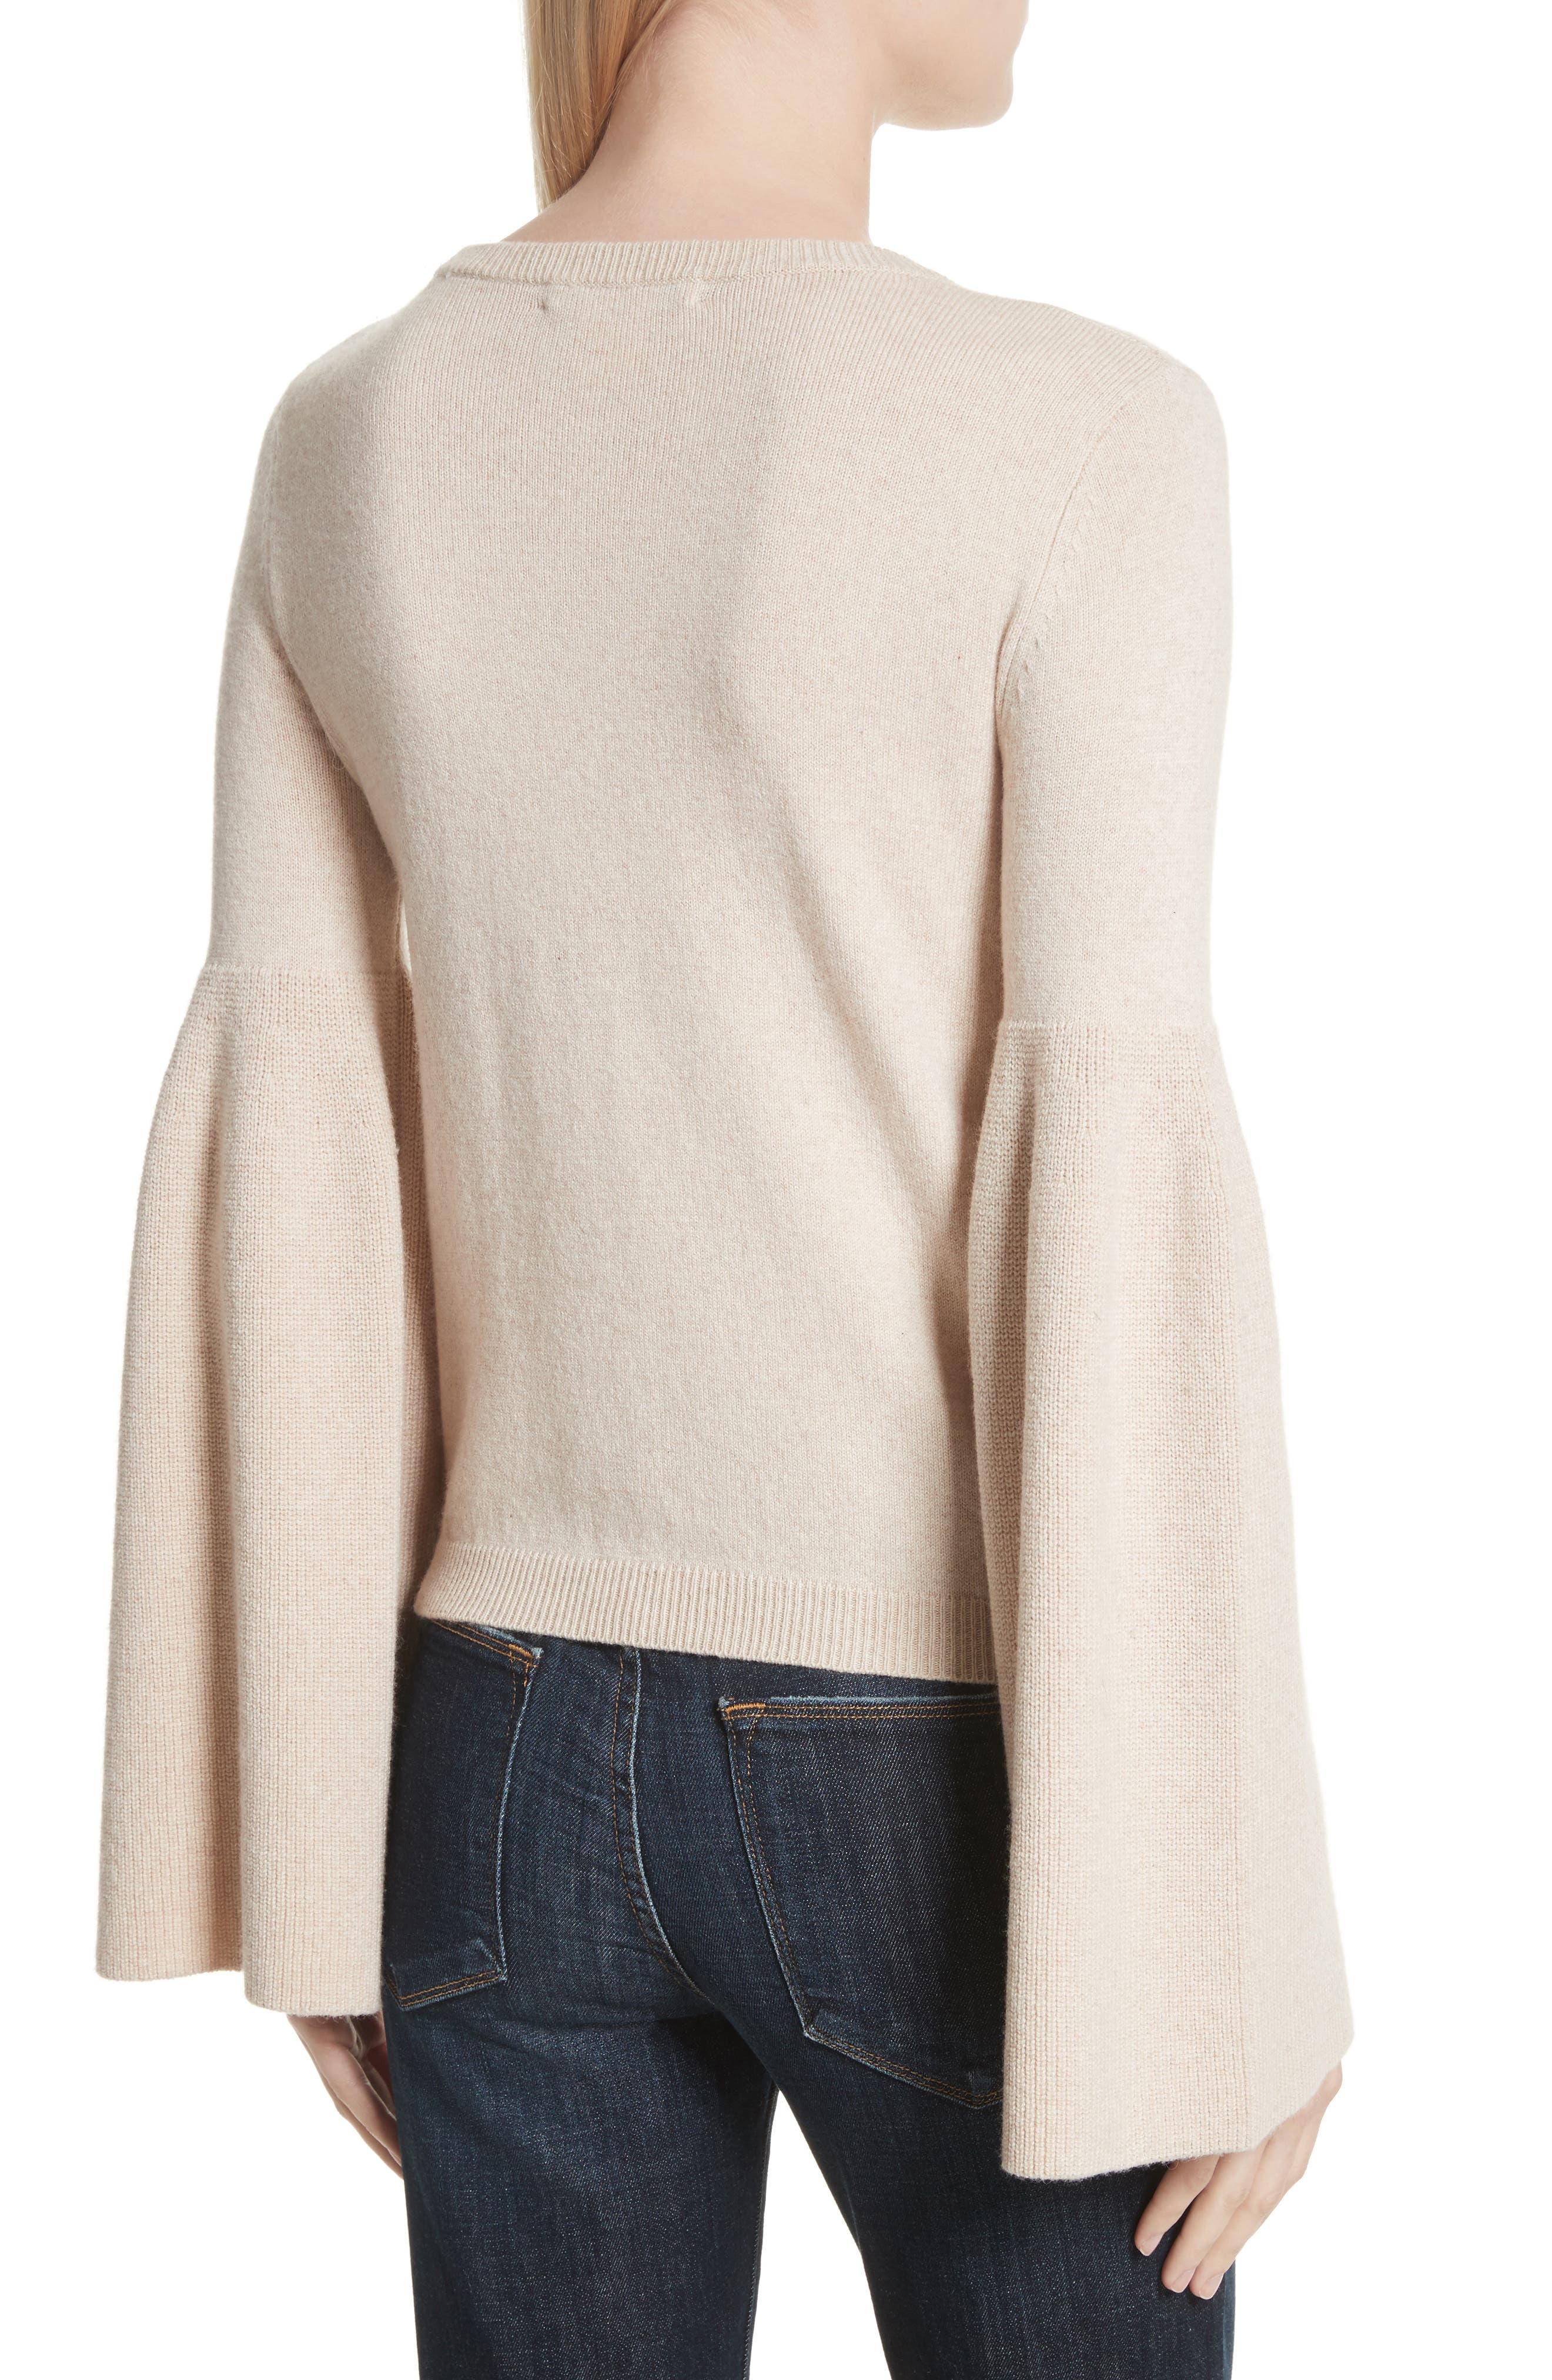 Parson Bell Sleeve Sweater,                             Alternate thumbnail 4, color,